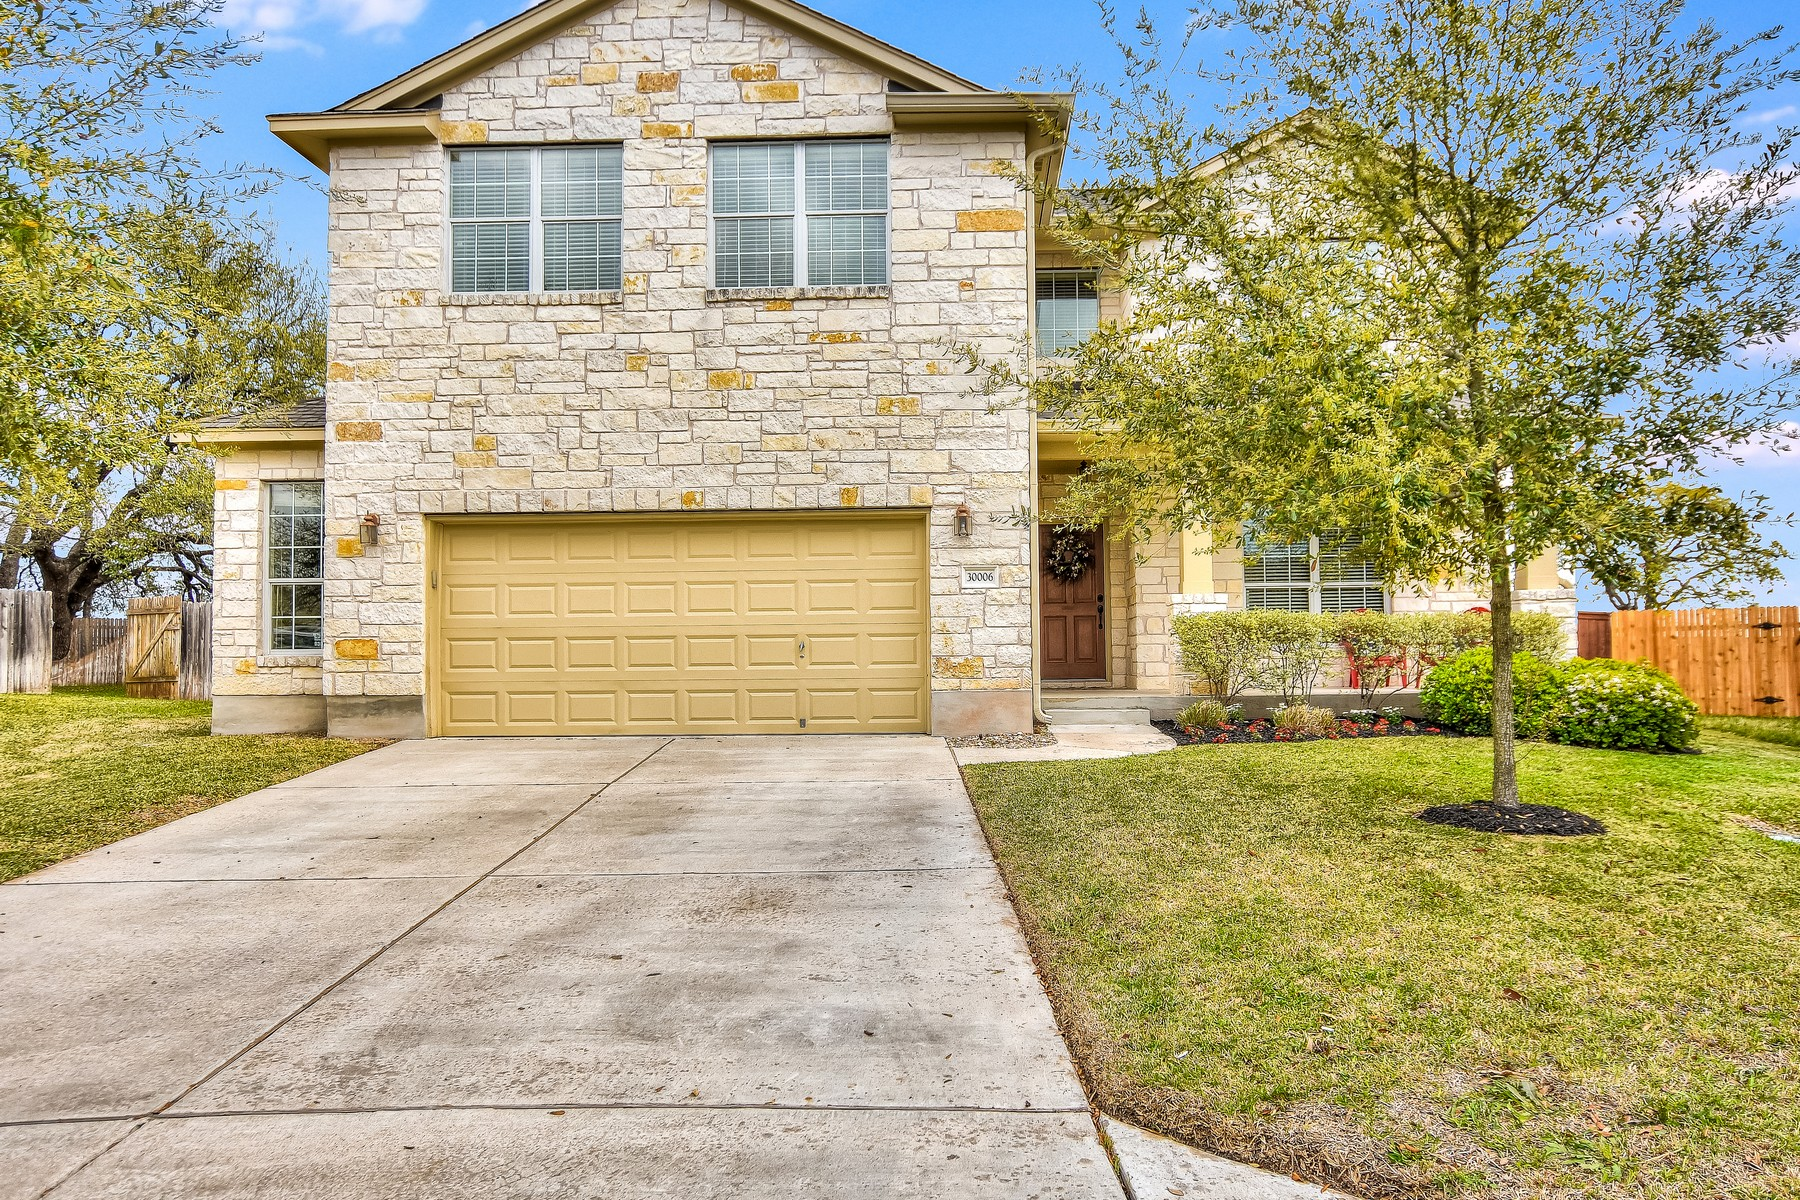 Vivienda unifamiliar por un Venta en Georgetown Living at its Best! 30006 Bumble Bee Dr Georgetown, Texas 78628 Estados Unidos